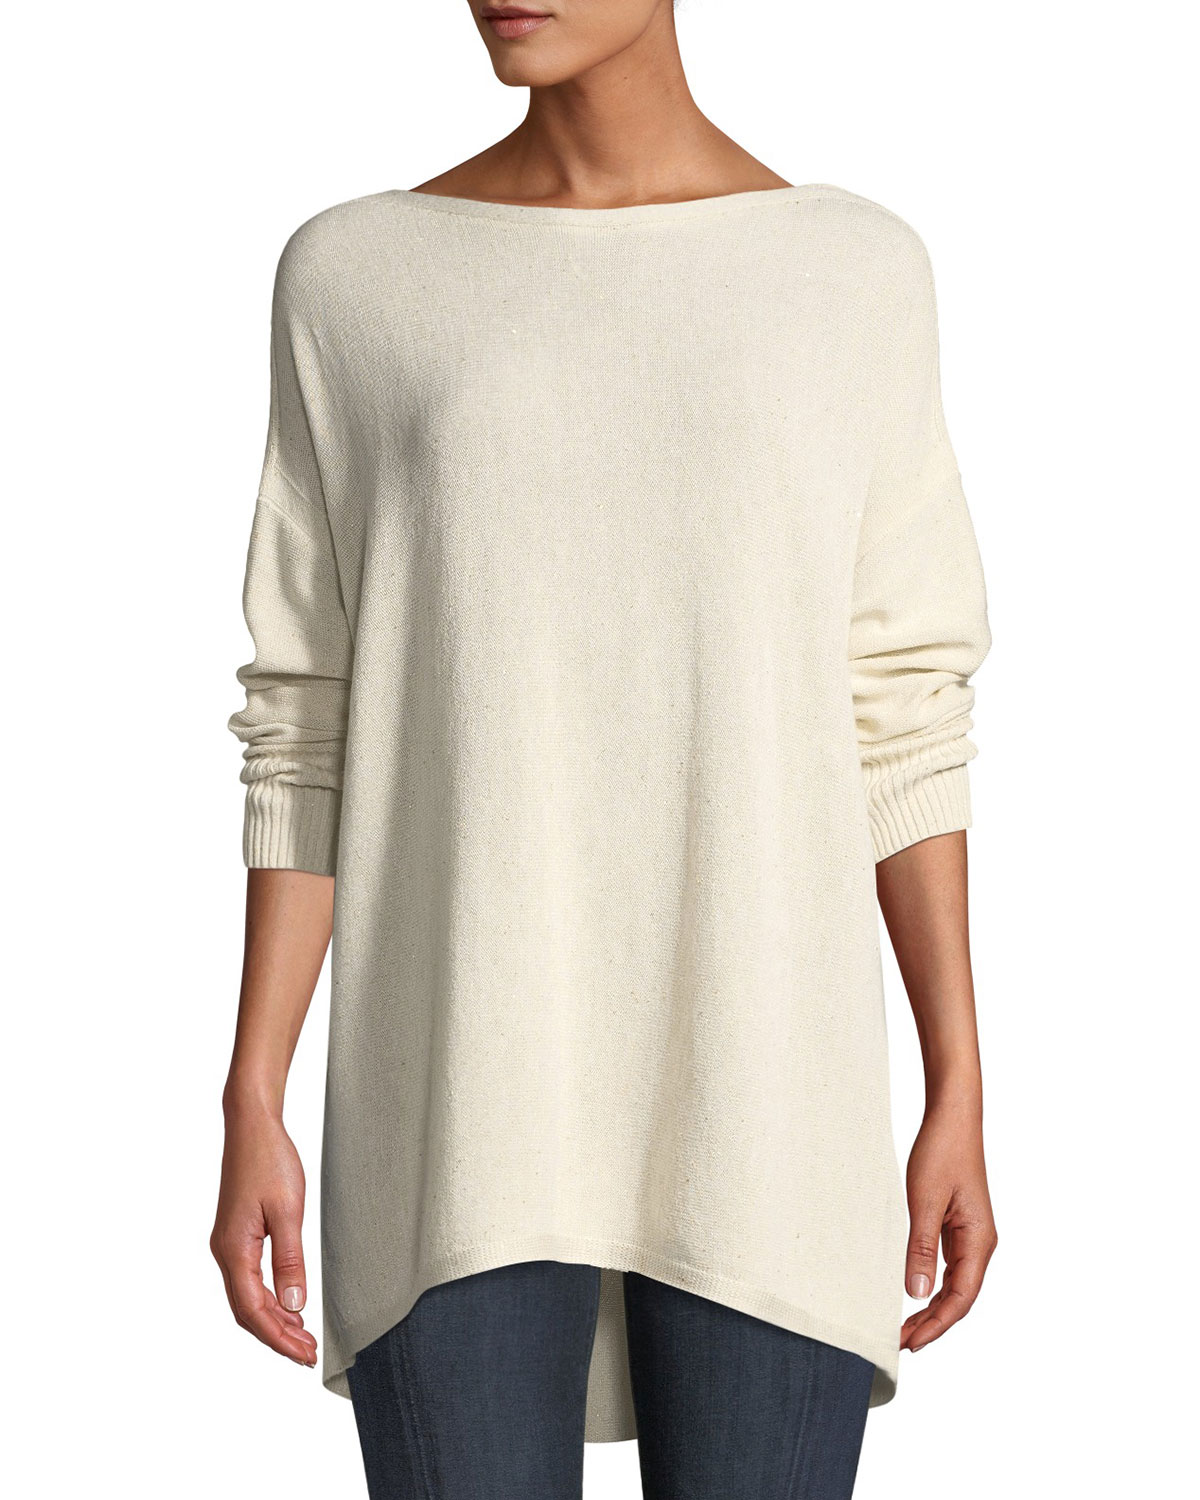 Lafayette 148 Sweaters DROP-SHOULDER NOVELTY SEQUIN PULLOVER SWEATER